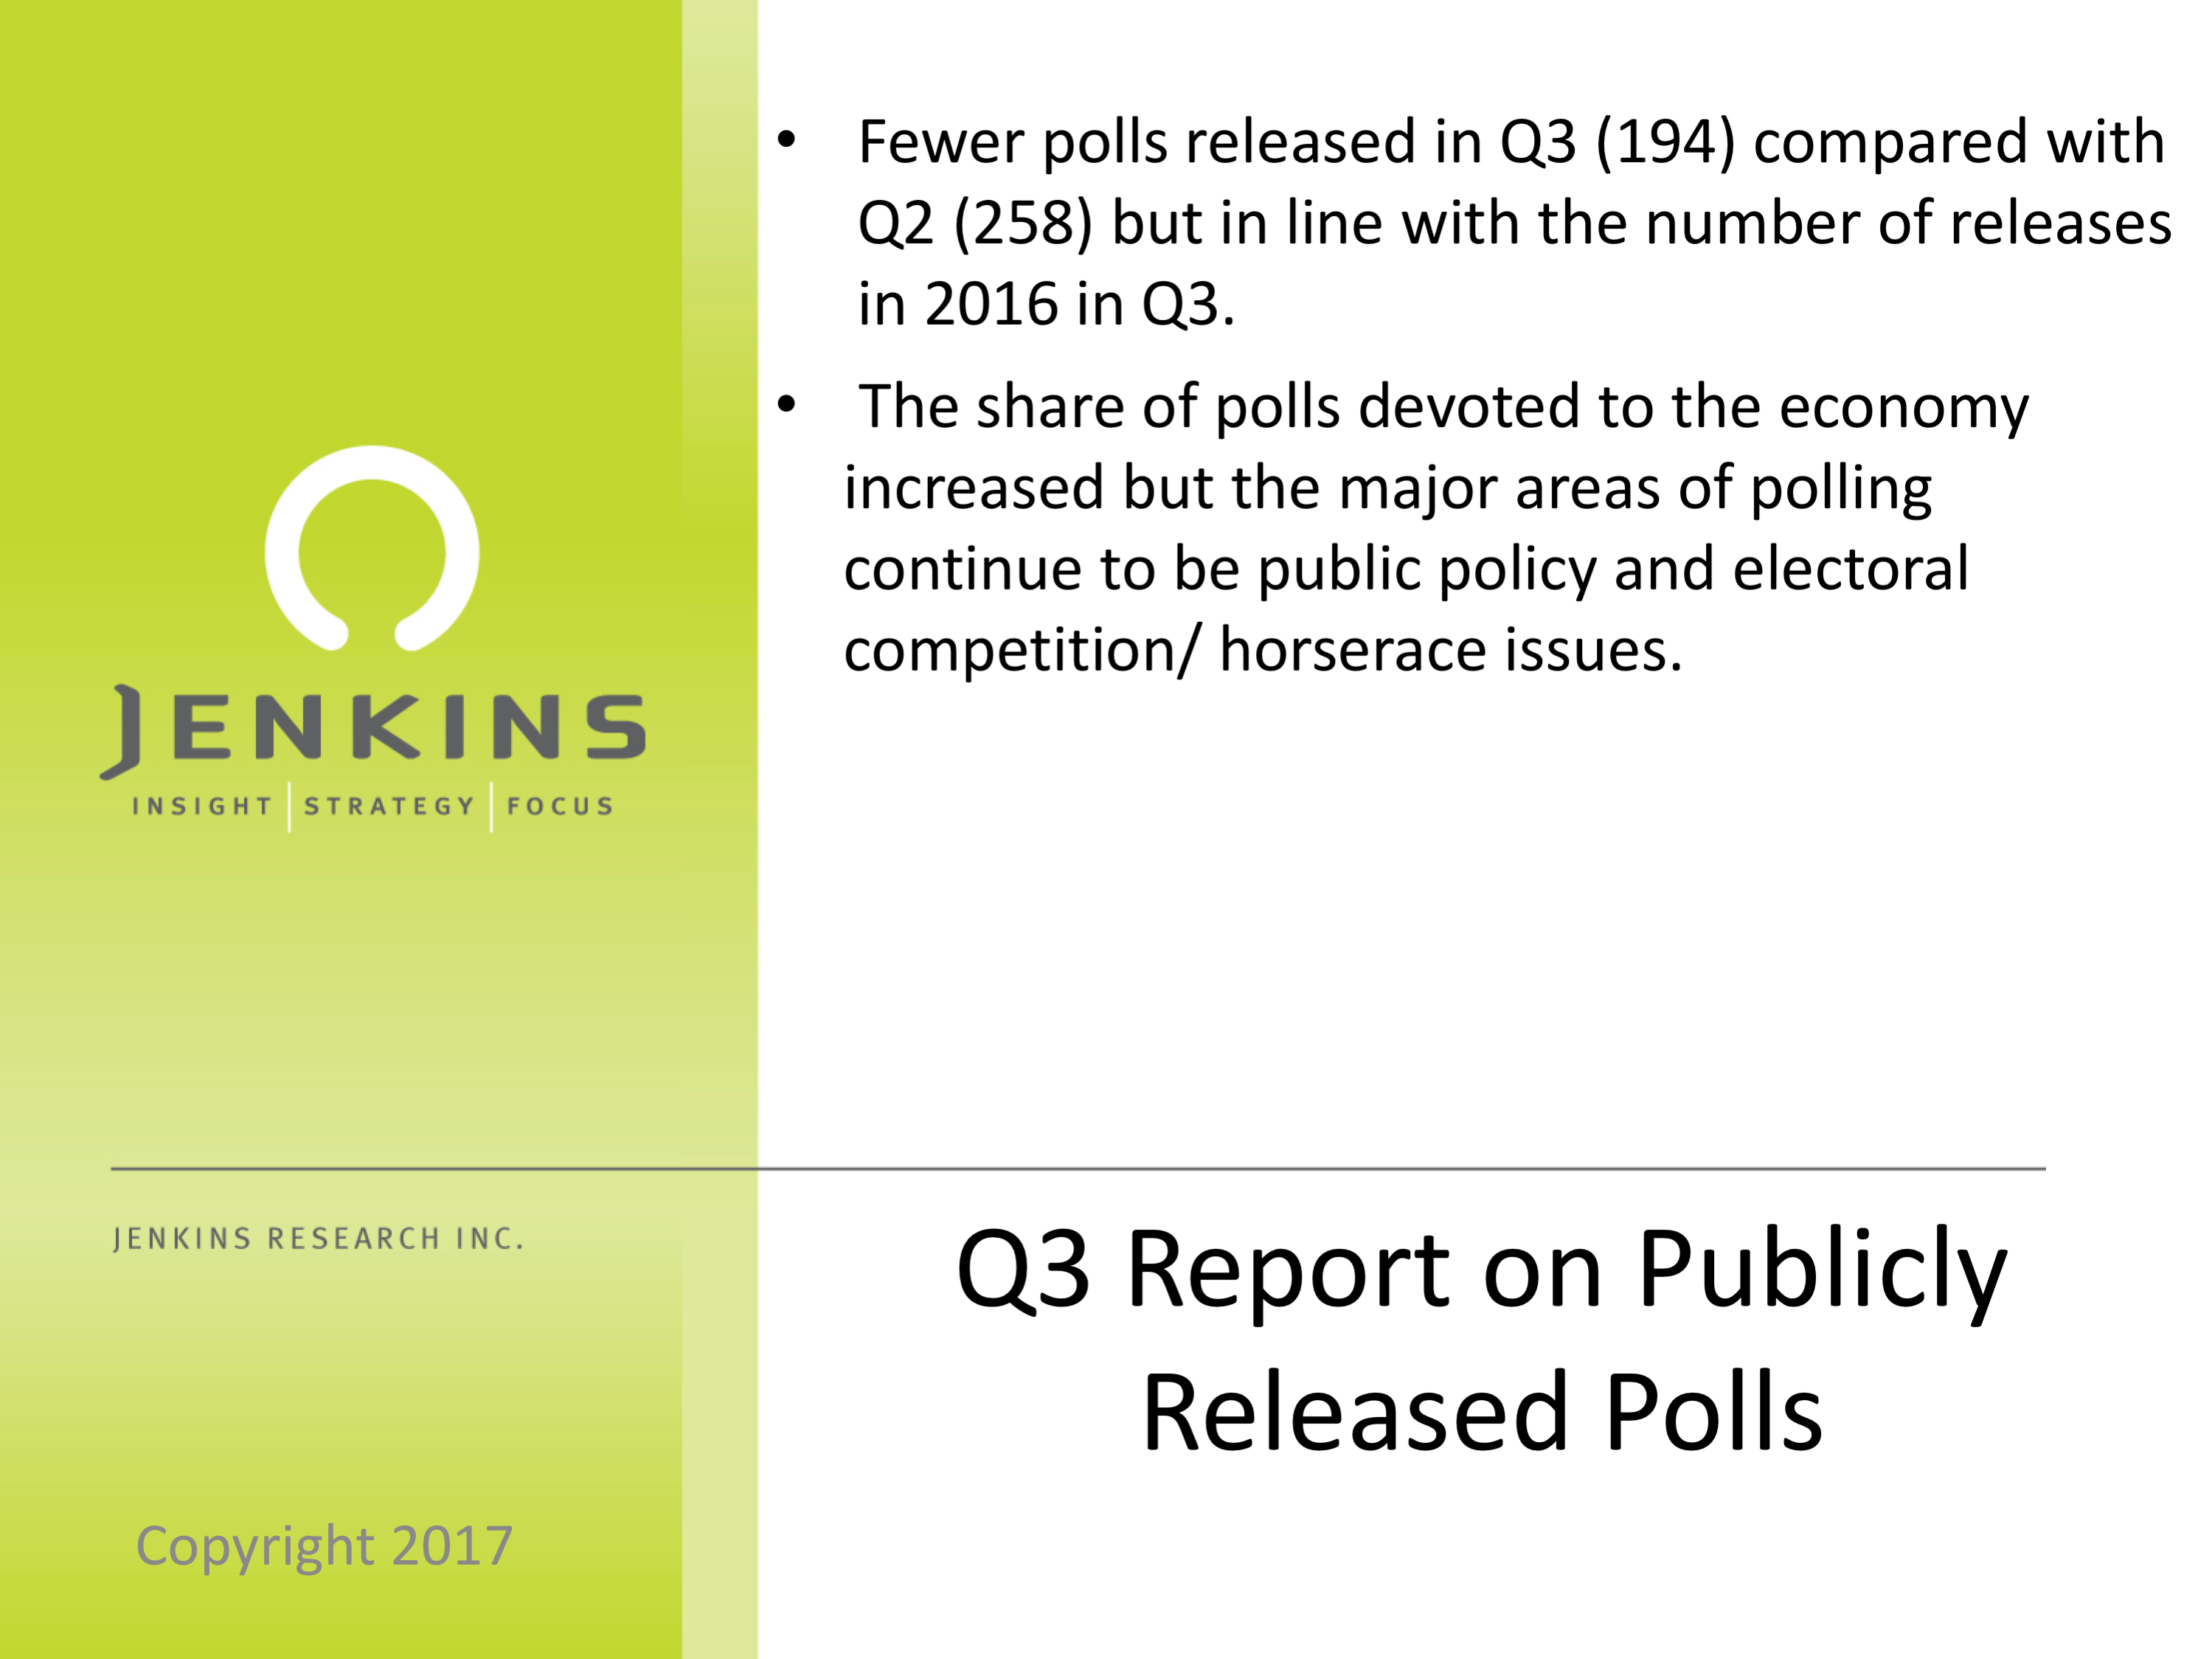 Public policy dominated Q3: A look at publicly released polls